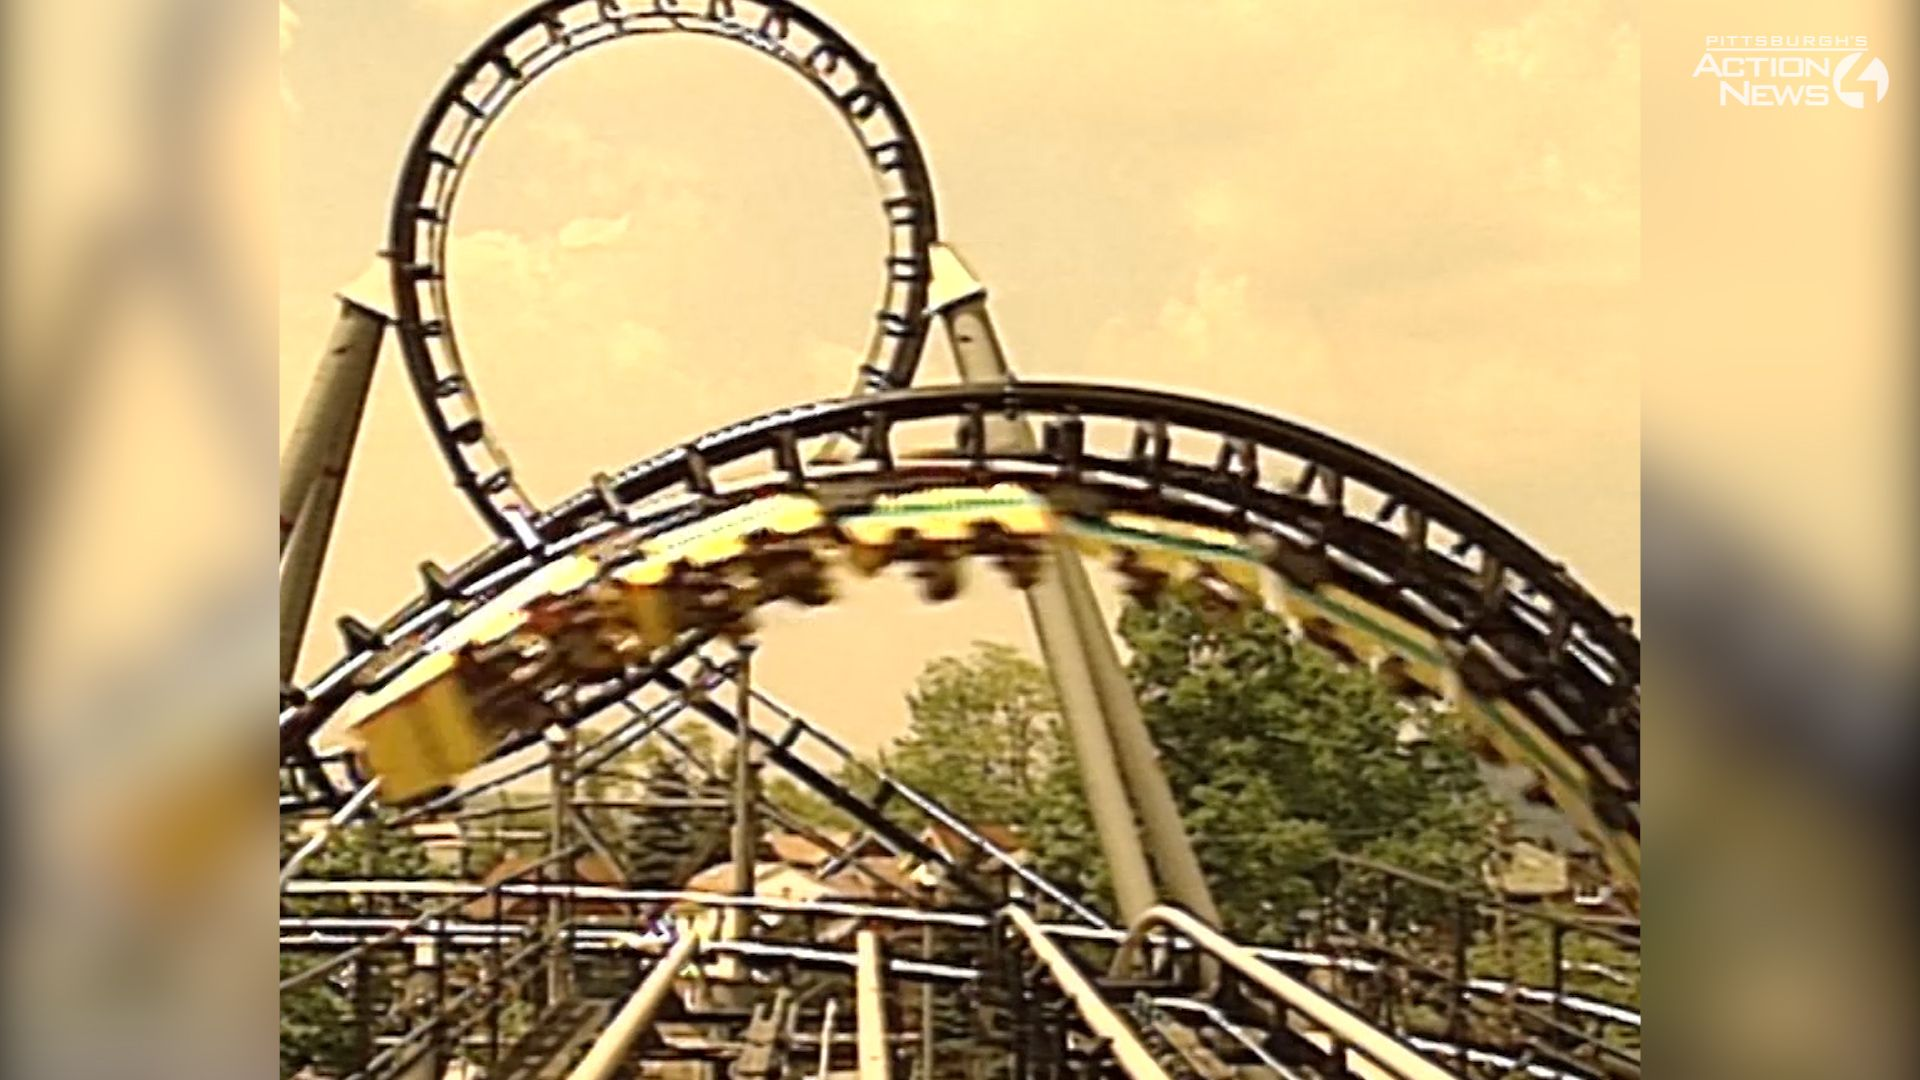 ARCHIVE: The Steel Phantom opens at Kennywood Park in 1991